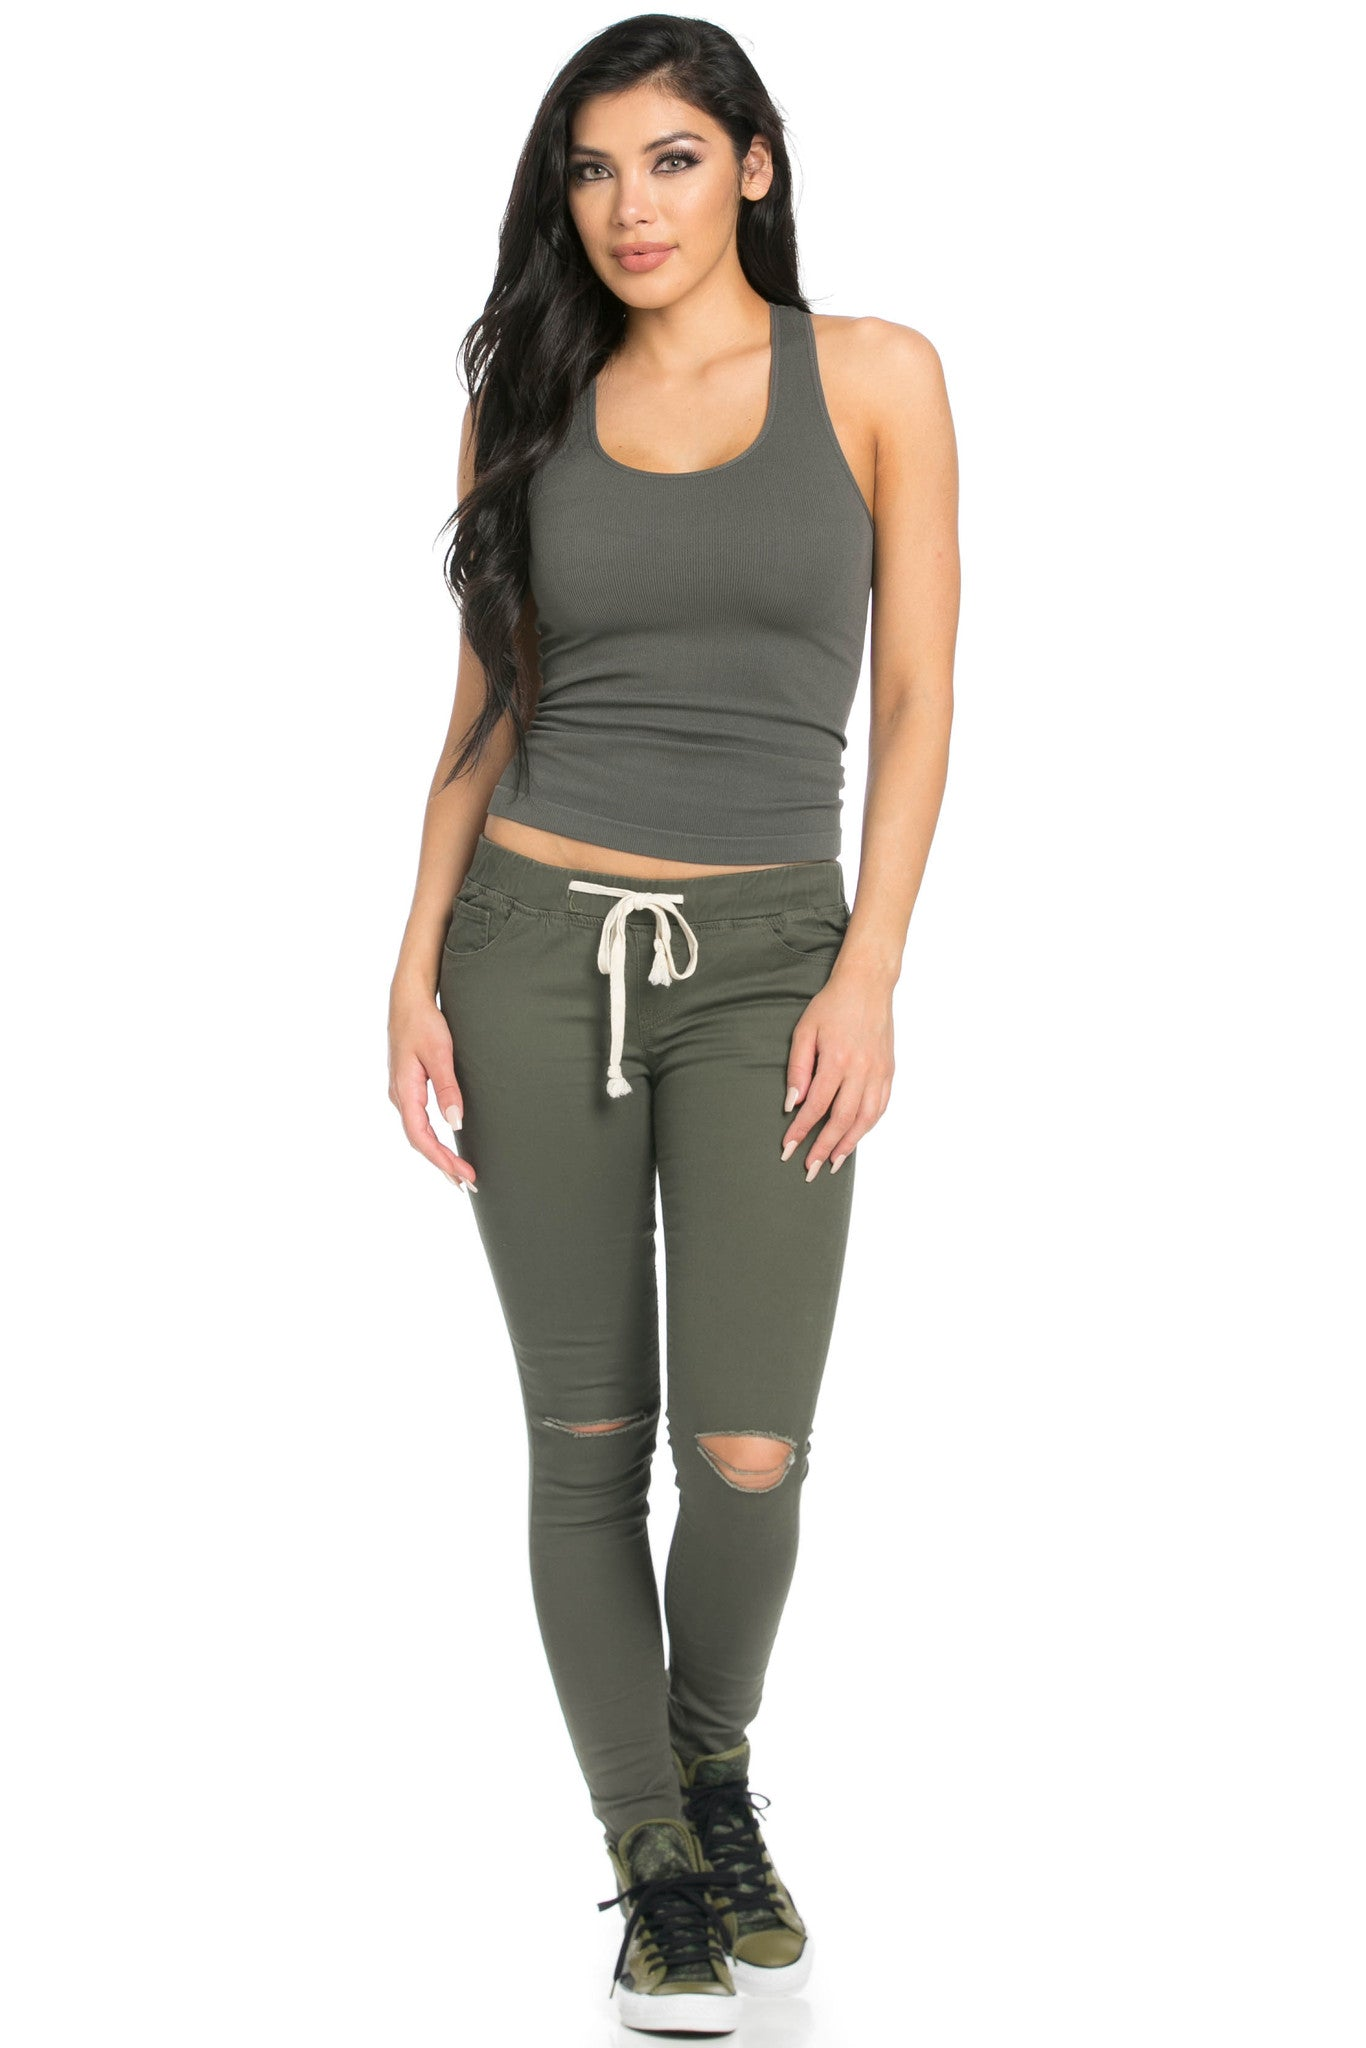 Destroyed Olive Skinny Jogger Jeans - Pants - My Yuccie - 8